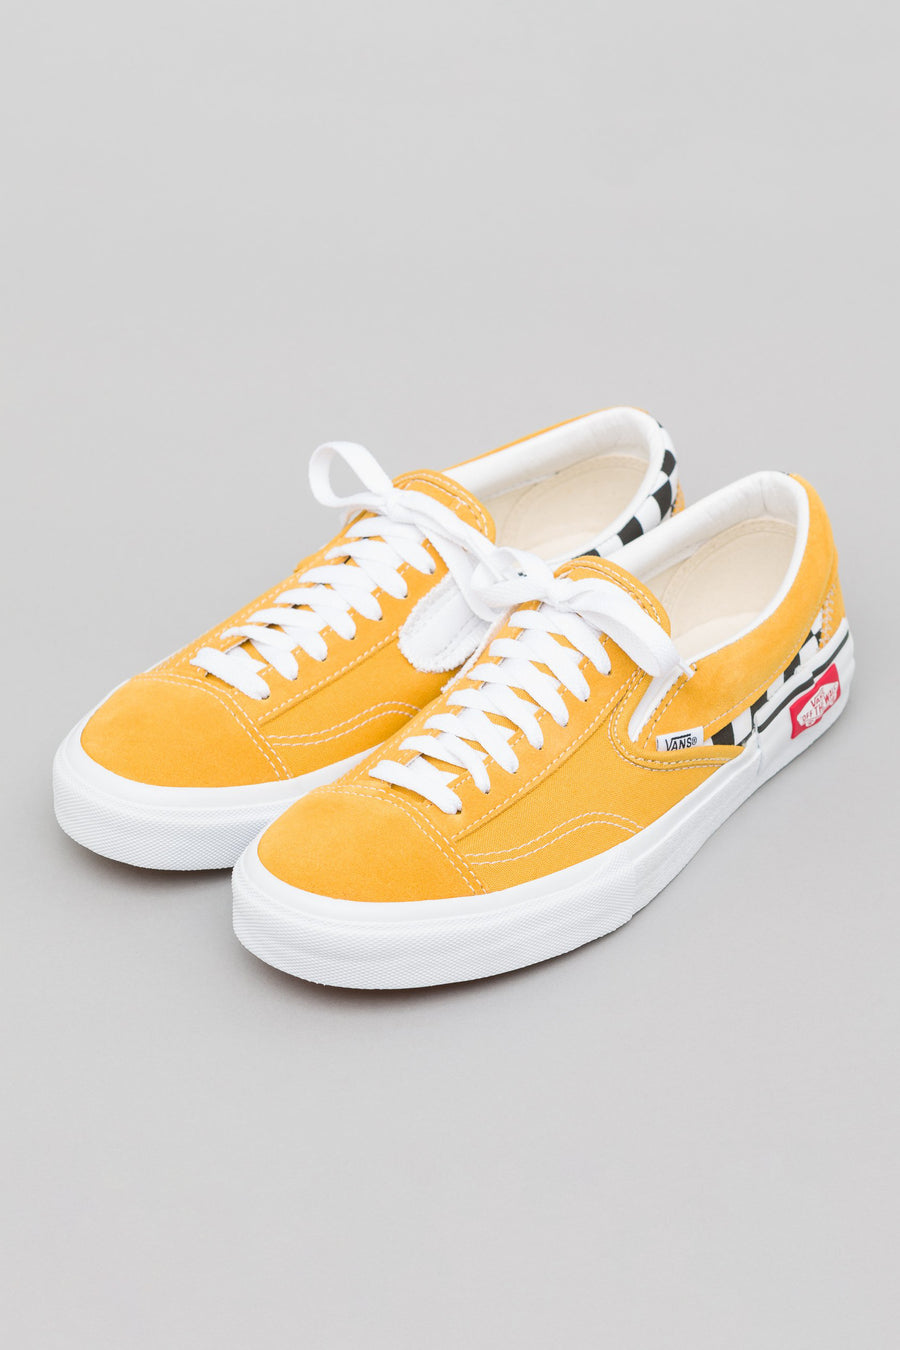 Vans Slip-On CAP in Yolk Yellow - Notre